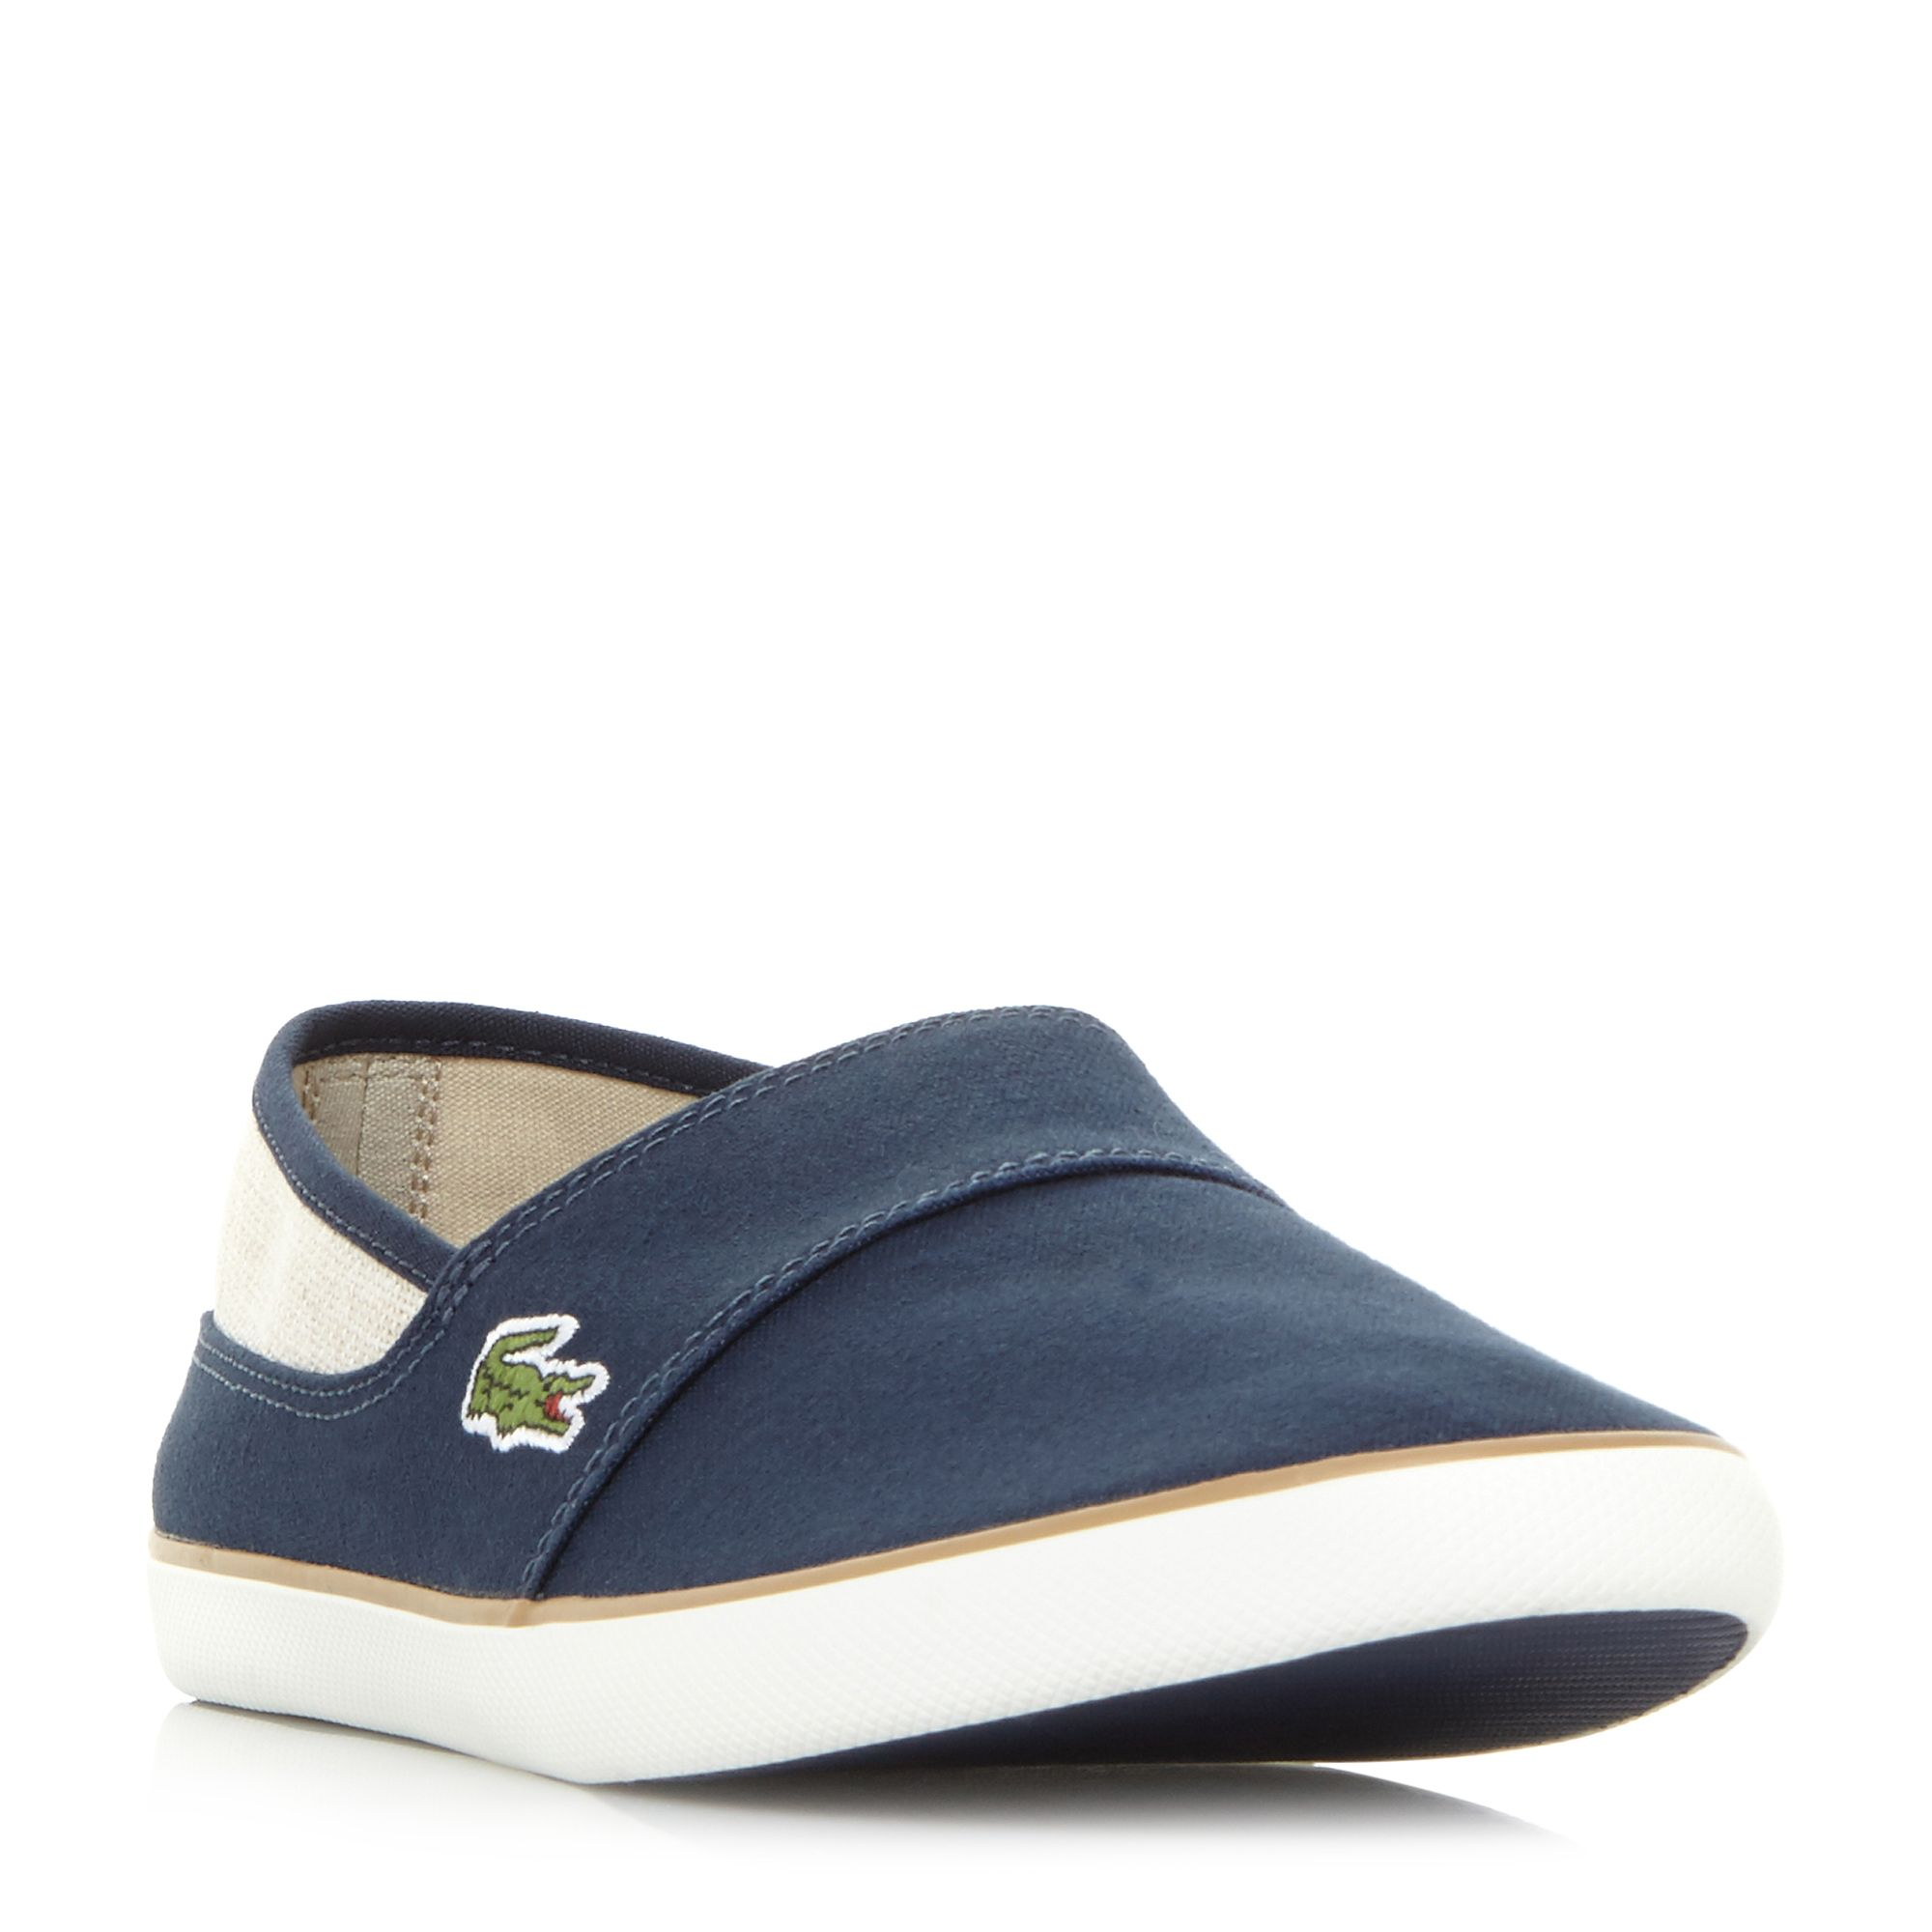 Marice Chambray Slip On Shoes by Lacoste